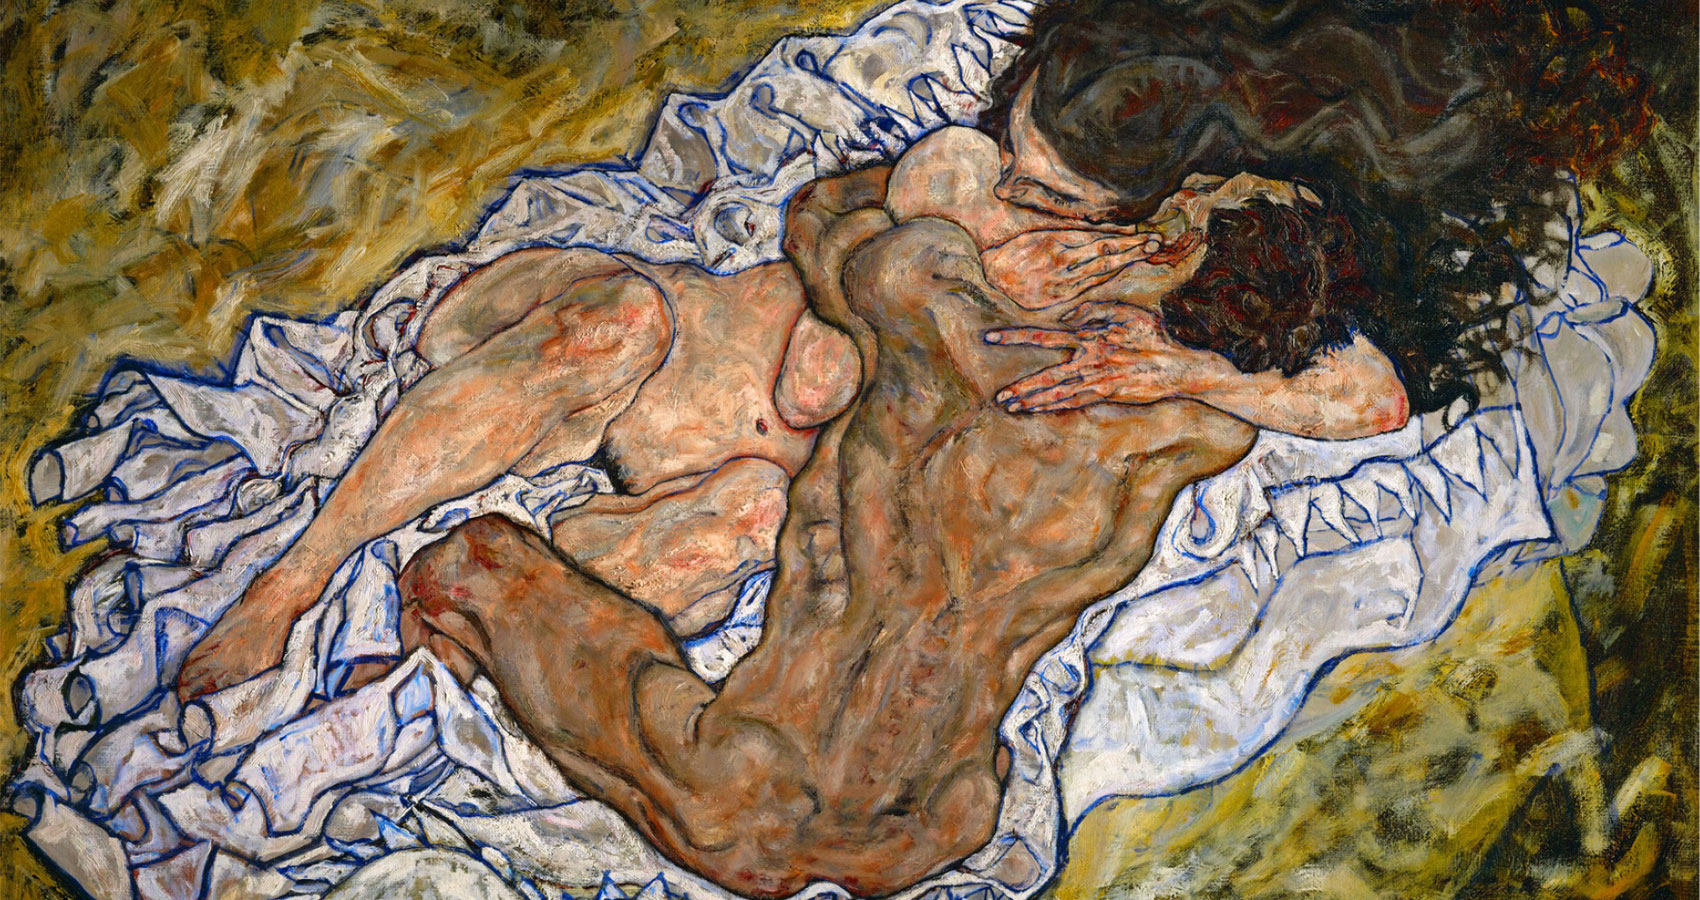 Schiele's Embrace, poem written by Henry Bladon at Spillwords.com